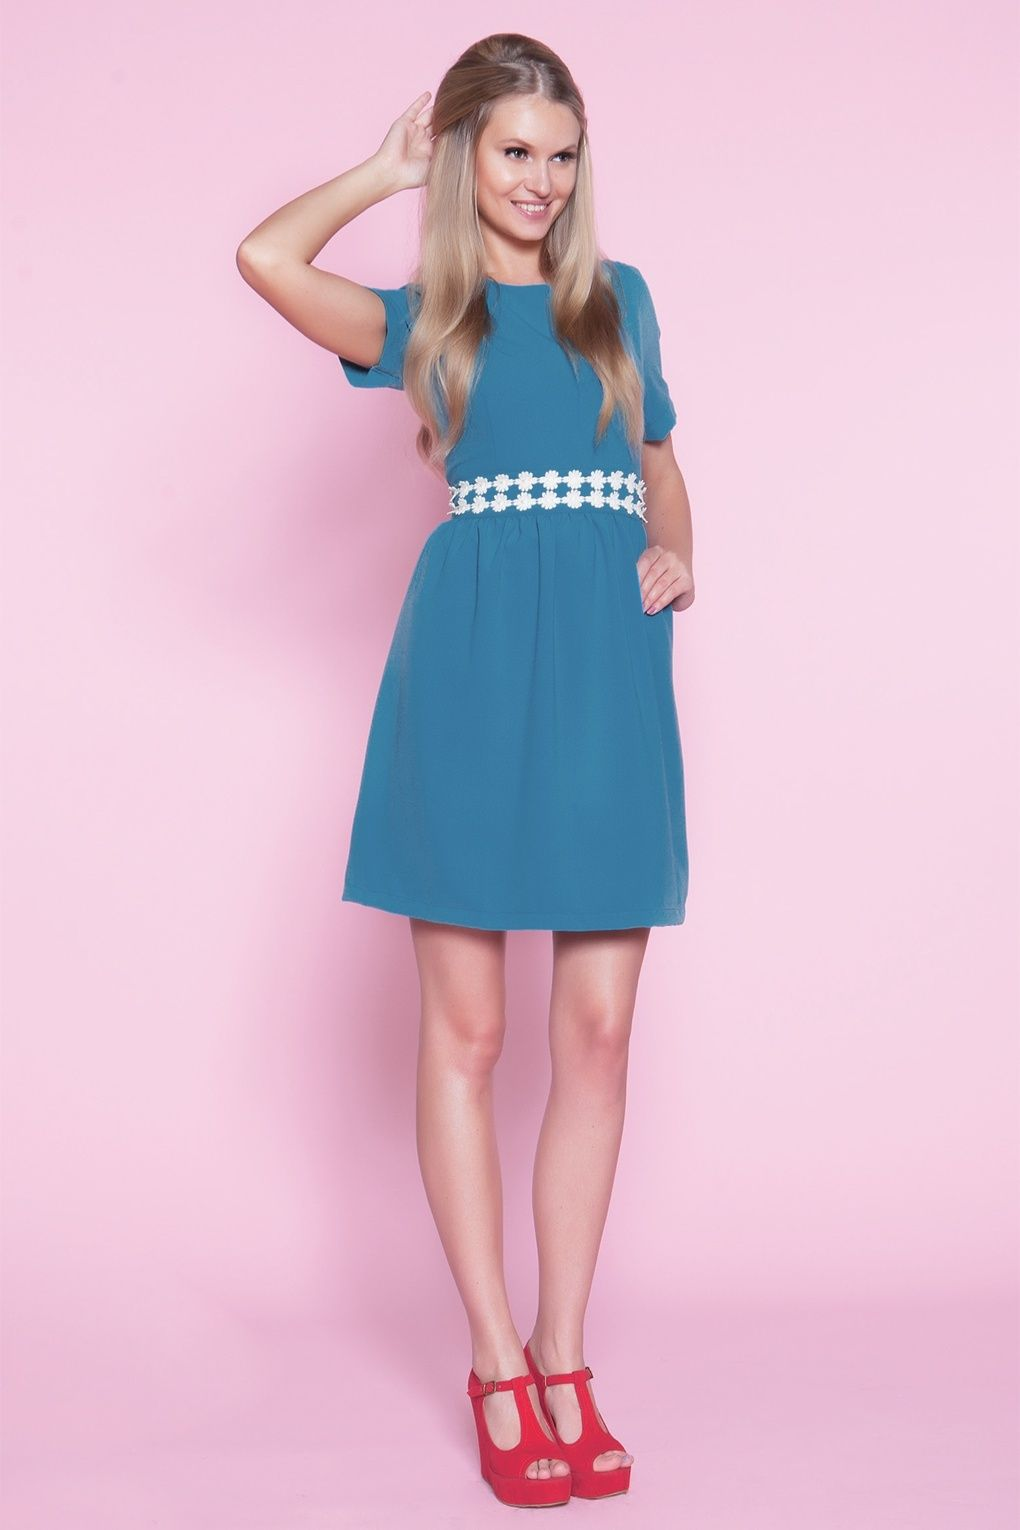 Sweetie s daisy shirt dress in blue s accessories